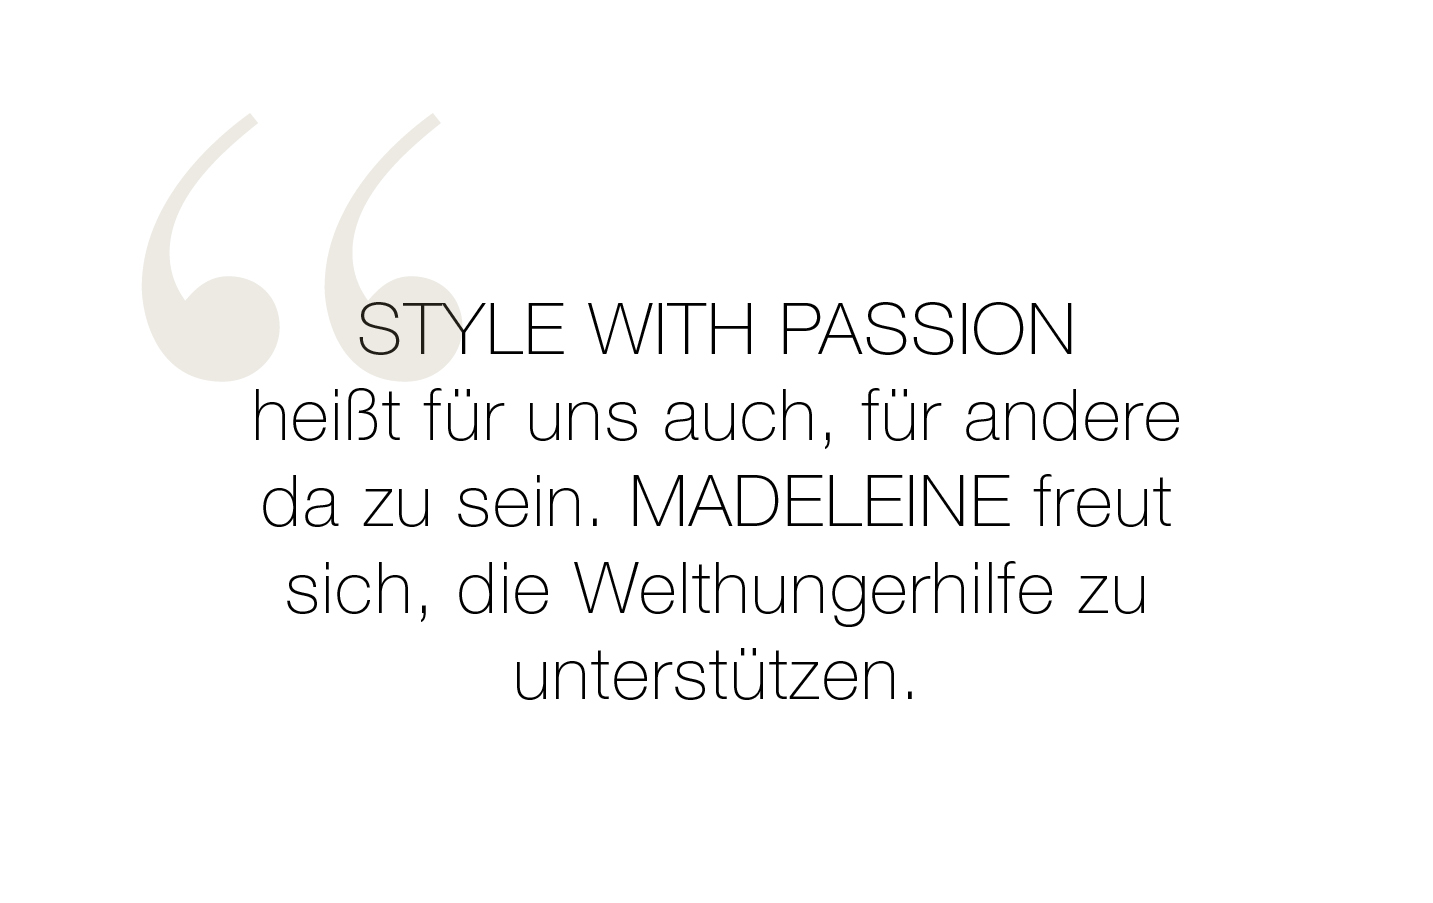 STYLE WITH PASSION